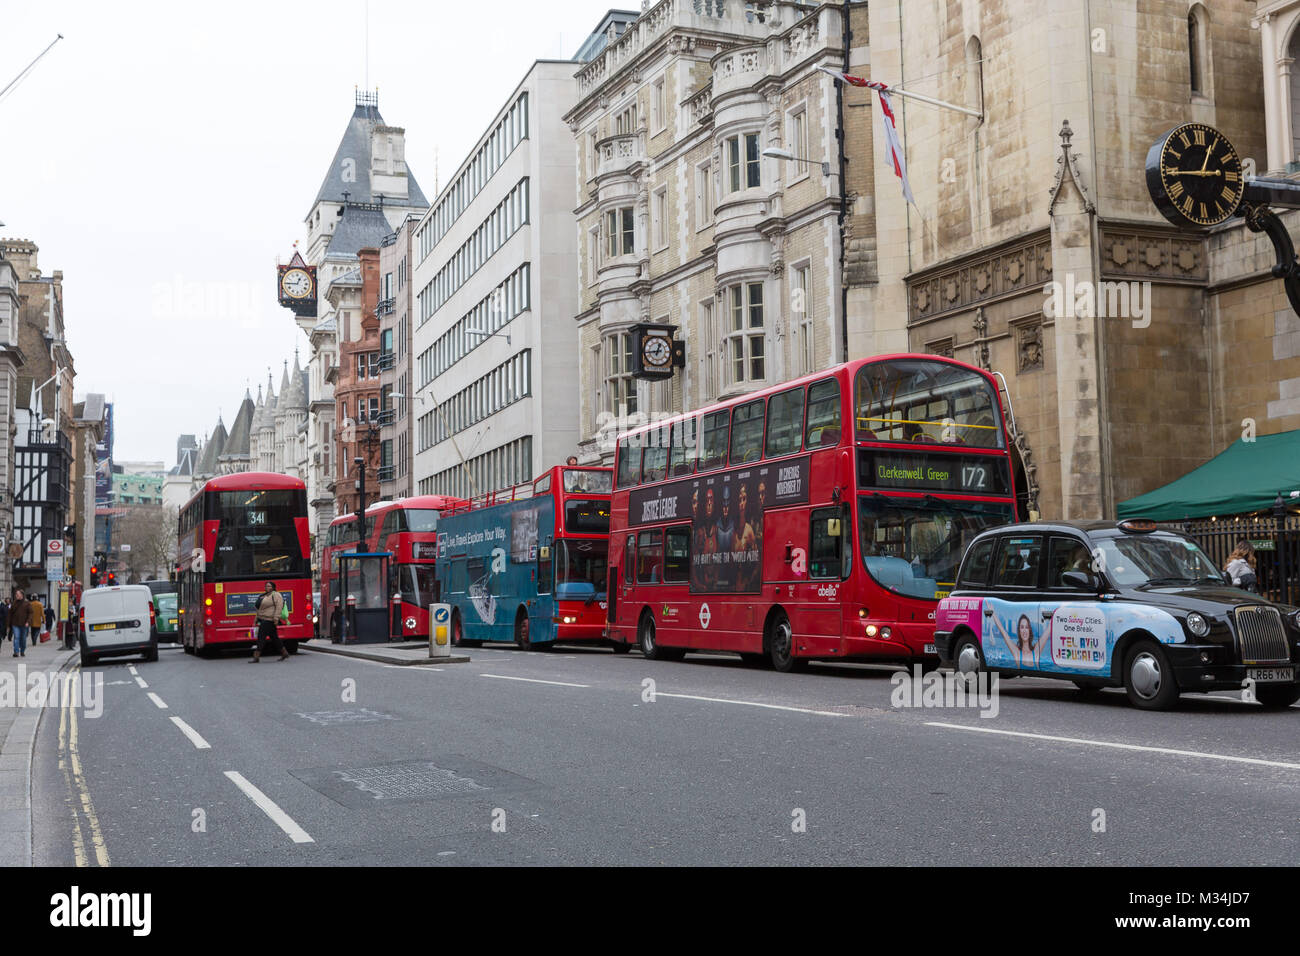 London, UK. 8th February 2018. Stationary buses and traffic in Fleet Street, London at lunchtime. Traffic pollution - Stock Image